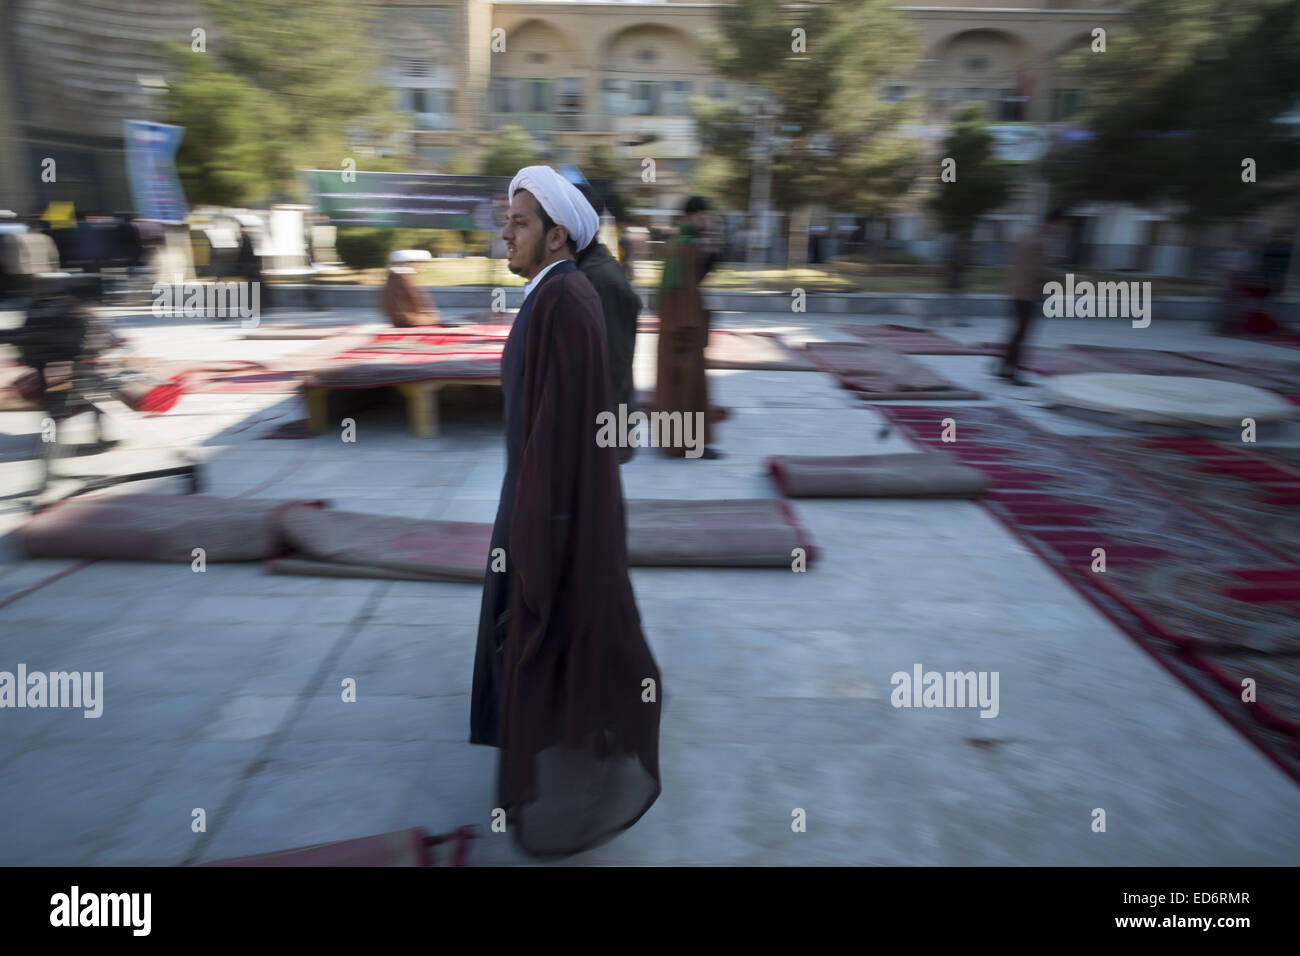 Qom, Iran. 30th Dec, 2014. An Iranian cleric leaves faziye Seminary in the holy city of Qom 120 km (75 miles) south - Stock Image